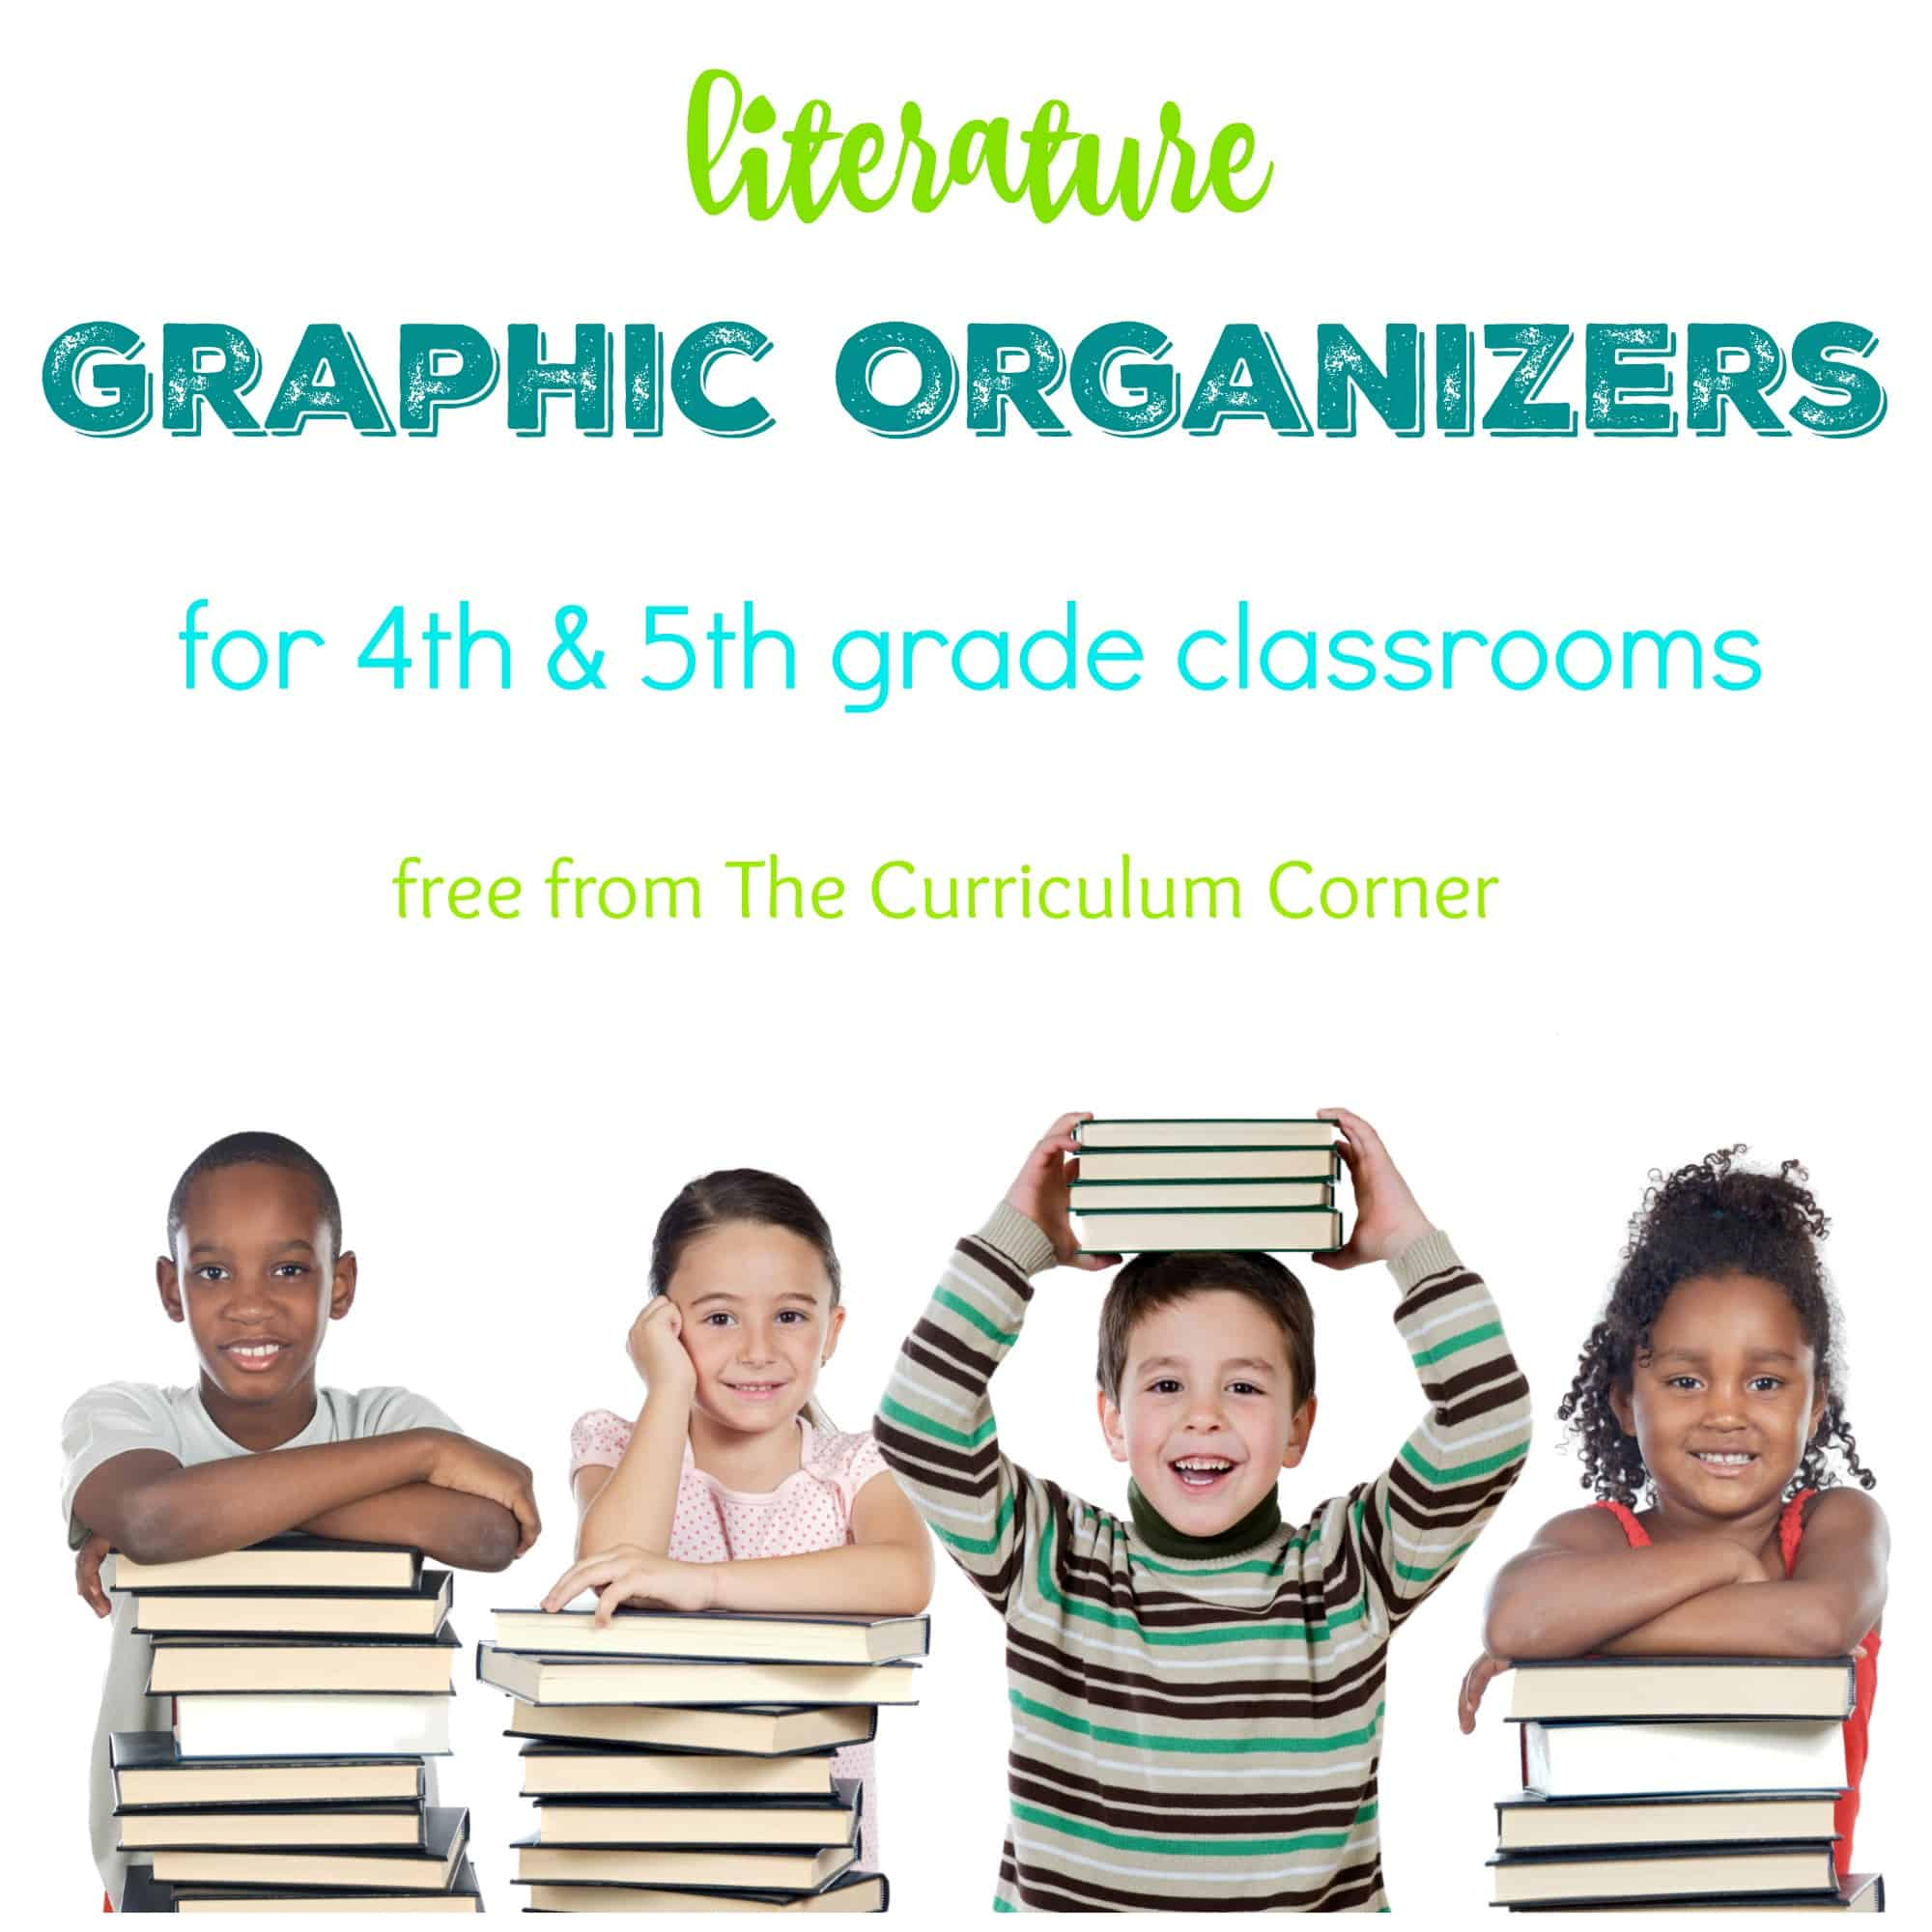 Literature Graphic Organizers